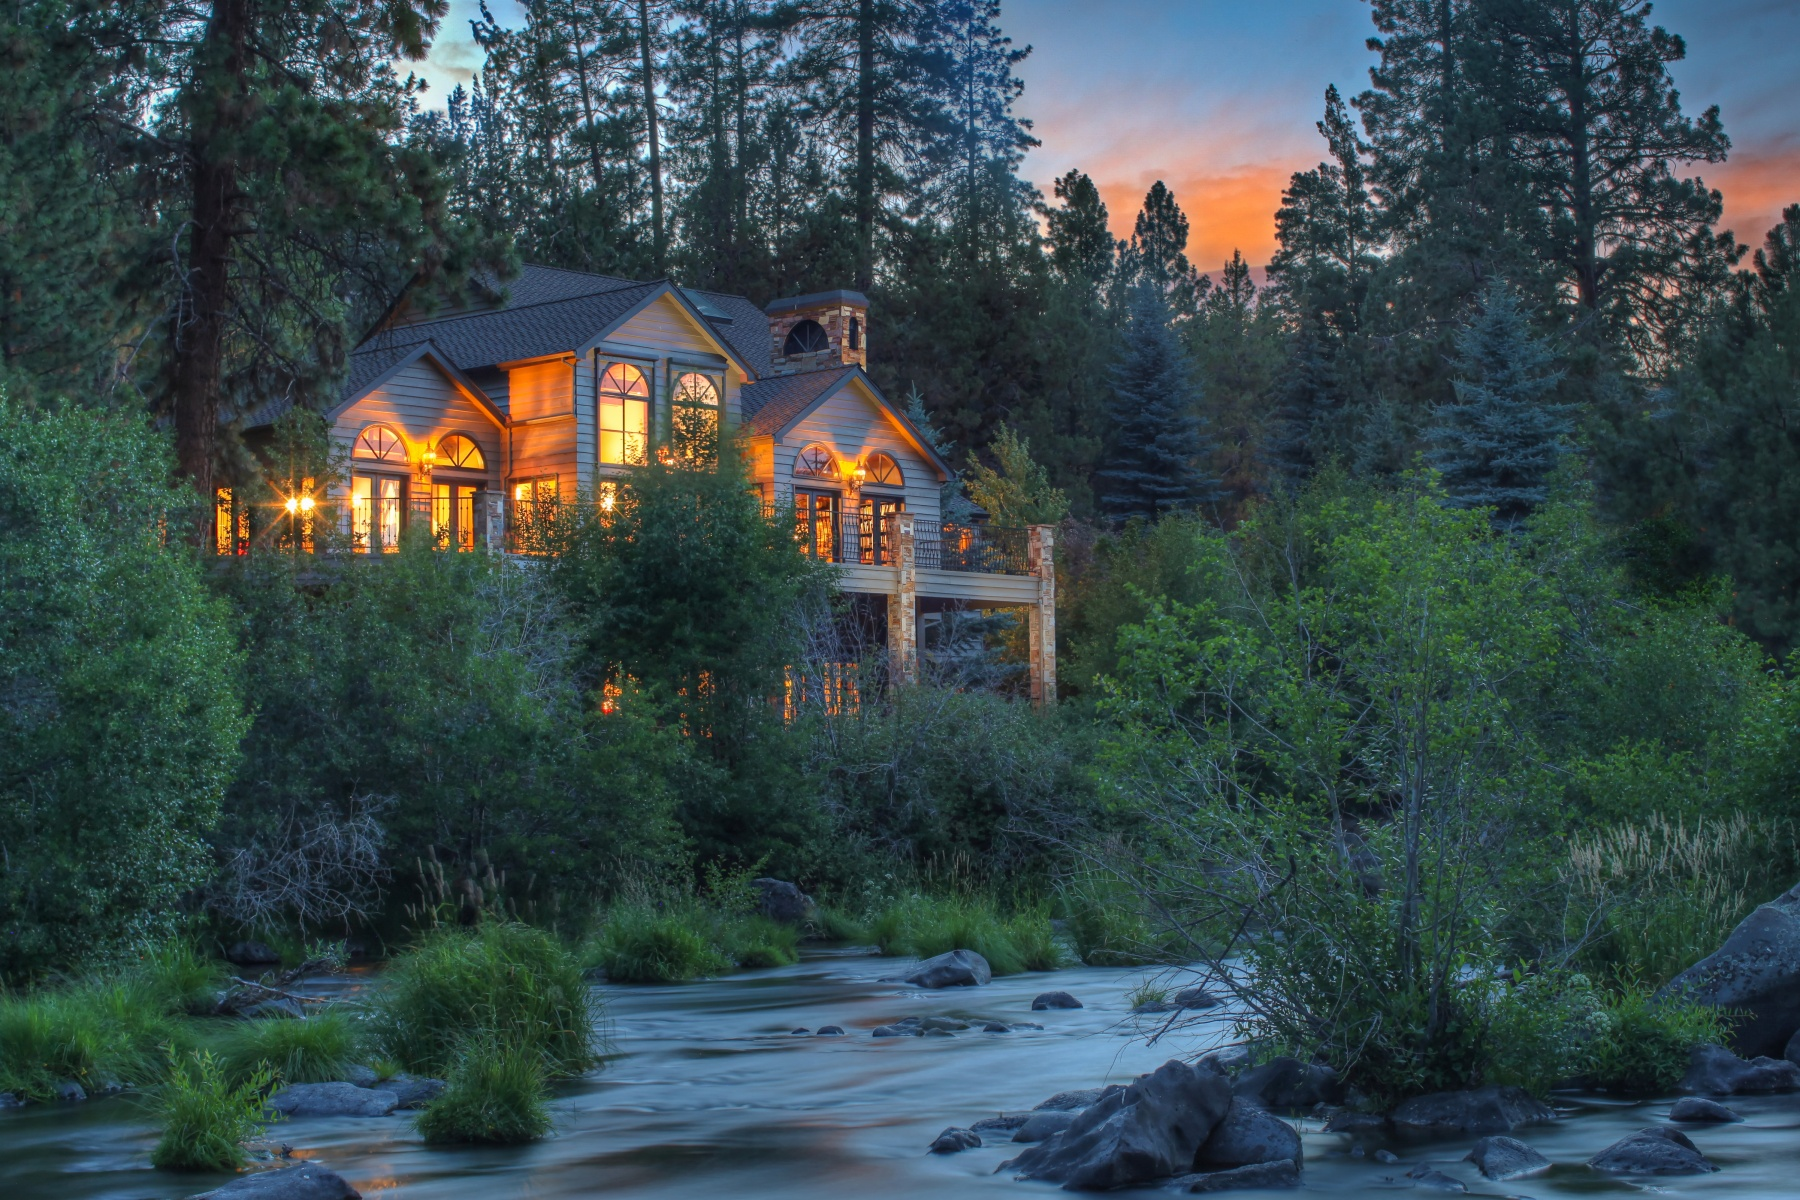 Single Family Home for Sale at Landmark Riverfront Home in Bend, OR 20131 Archie Briggs Rd Bend, Oregon, 97703 United States